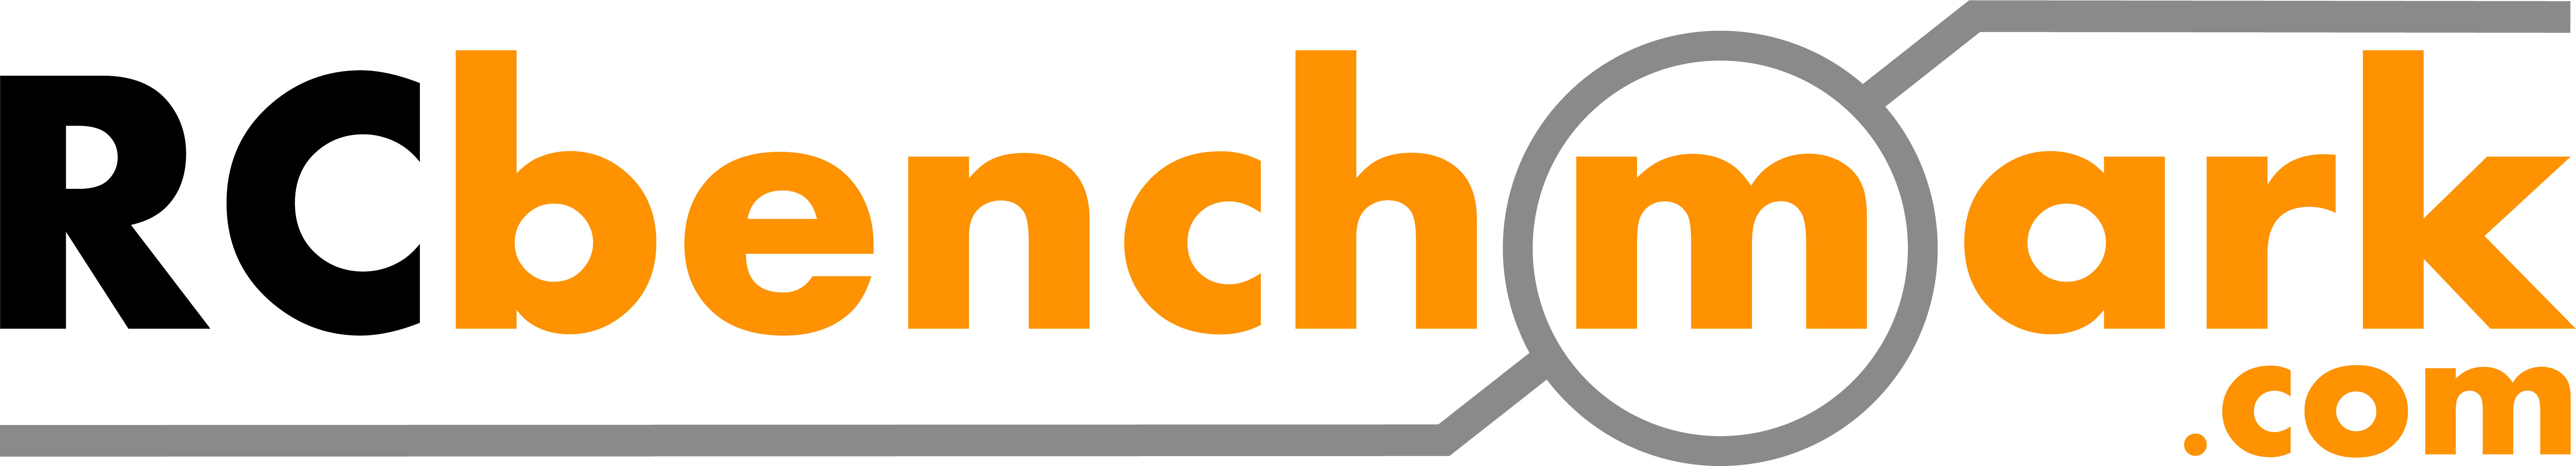 RC Benchmark Logo, 12 inches in length, full color